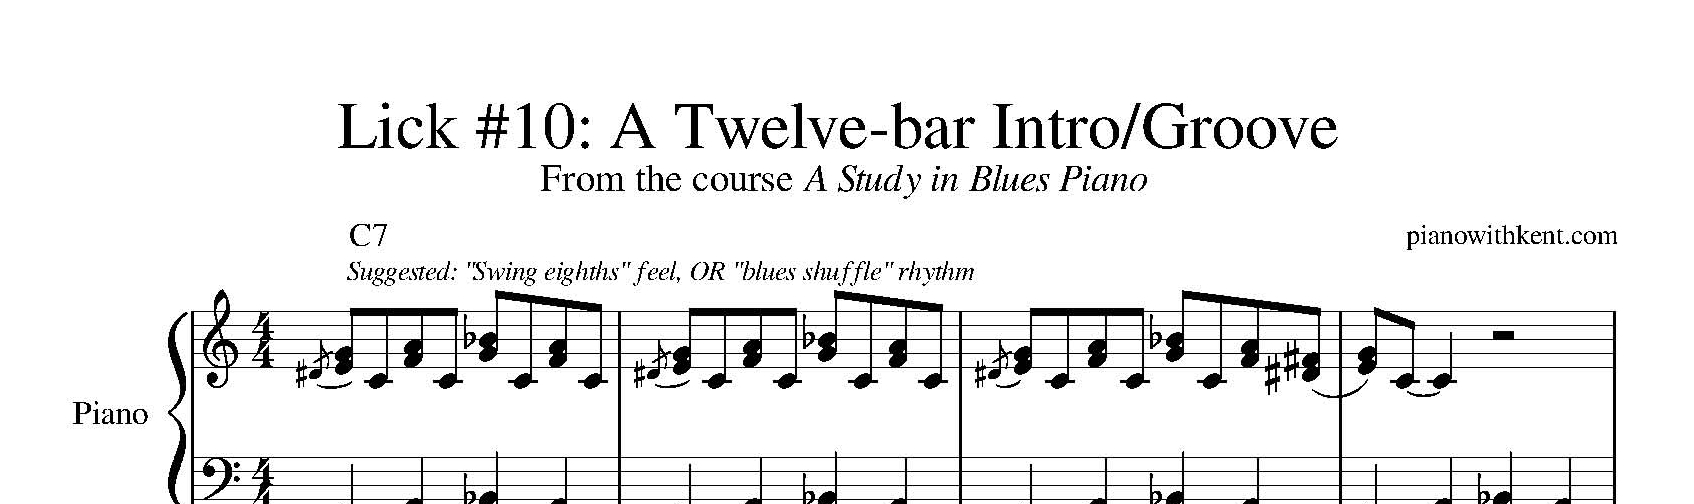 Sheet Music: Lick #10 from